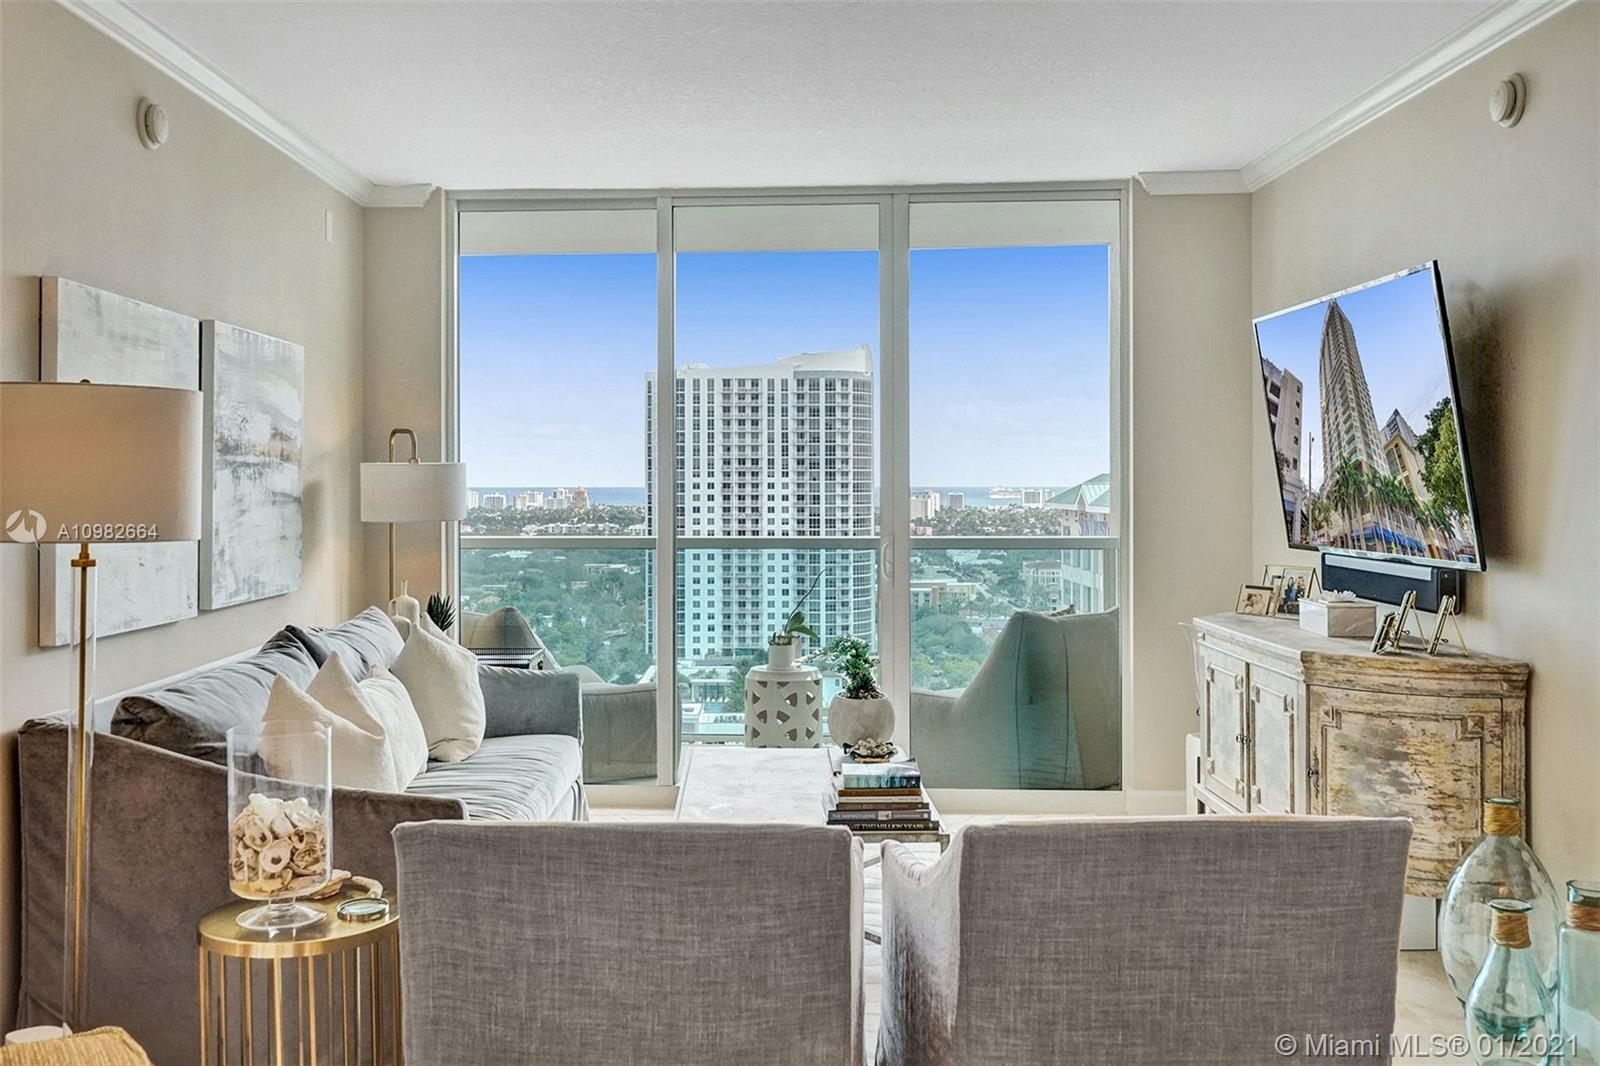 Impressive views of Fort Lauderdale Downtown and the ocean from the 25th floor of the 350 Las Olas Place. Best line in the building. Nicely located, only steps away from Las Olas restaurants, bars, shops and the beaches. Bright unit with high impact windows and doors, spacious balcony, covered parking and washer and dryer inside. Split floor plan with tile floor throughout and opened kitchen. Full service building featuring rooftop pool with stunning views, fitness center, media room, party room & valet. The building is also pet friendly